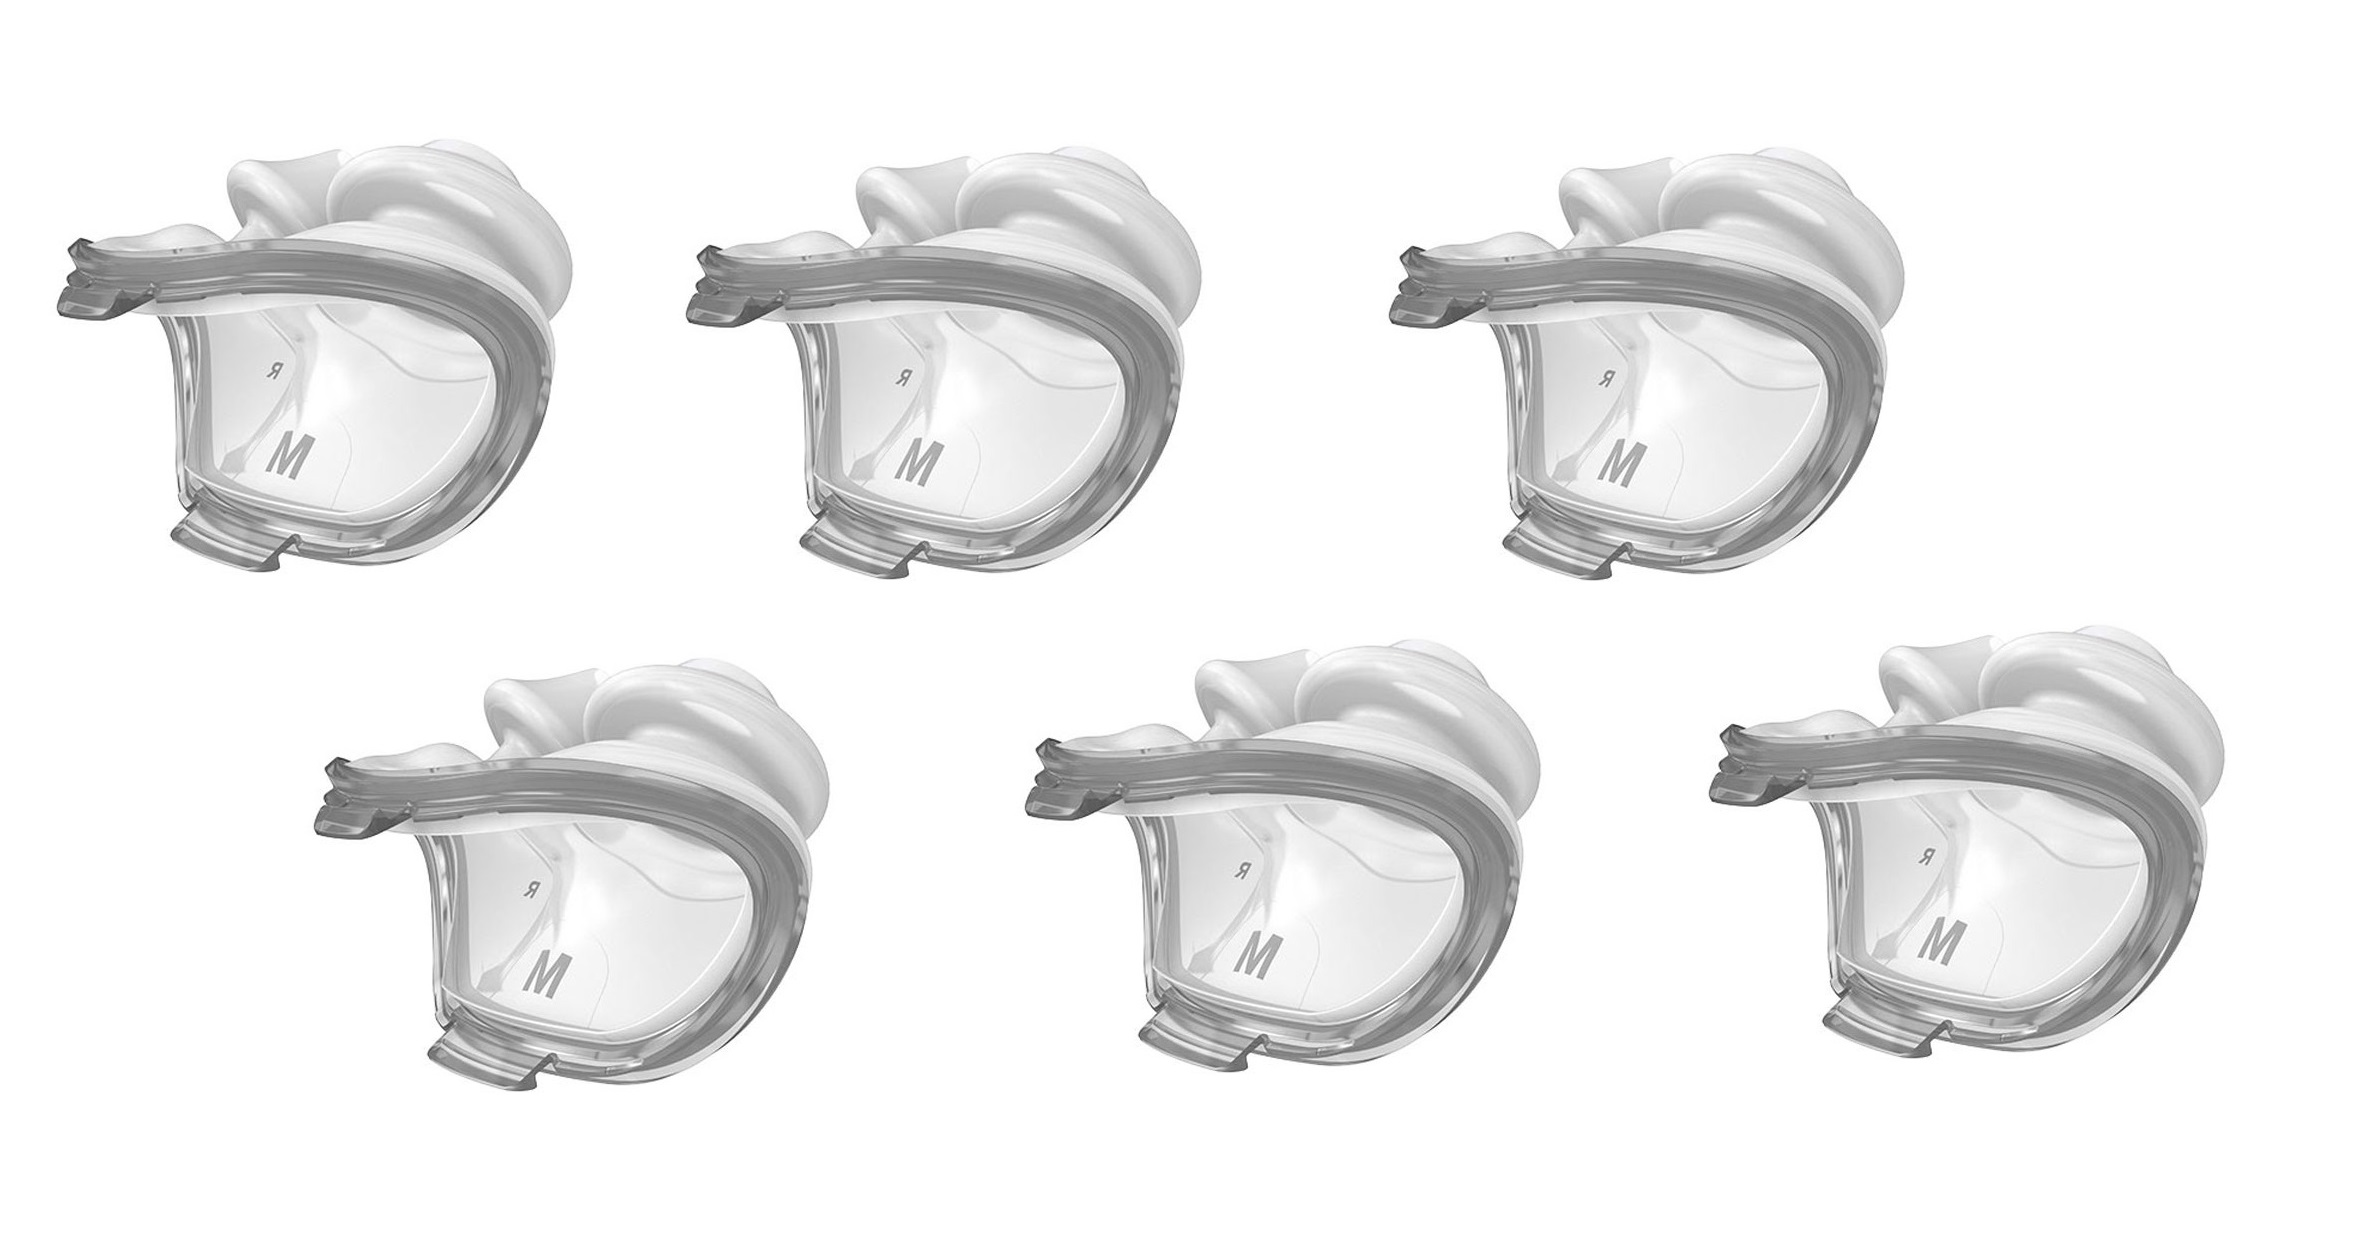 airfit p10 replacement nasal pillow 6 pack